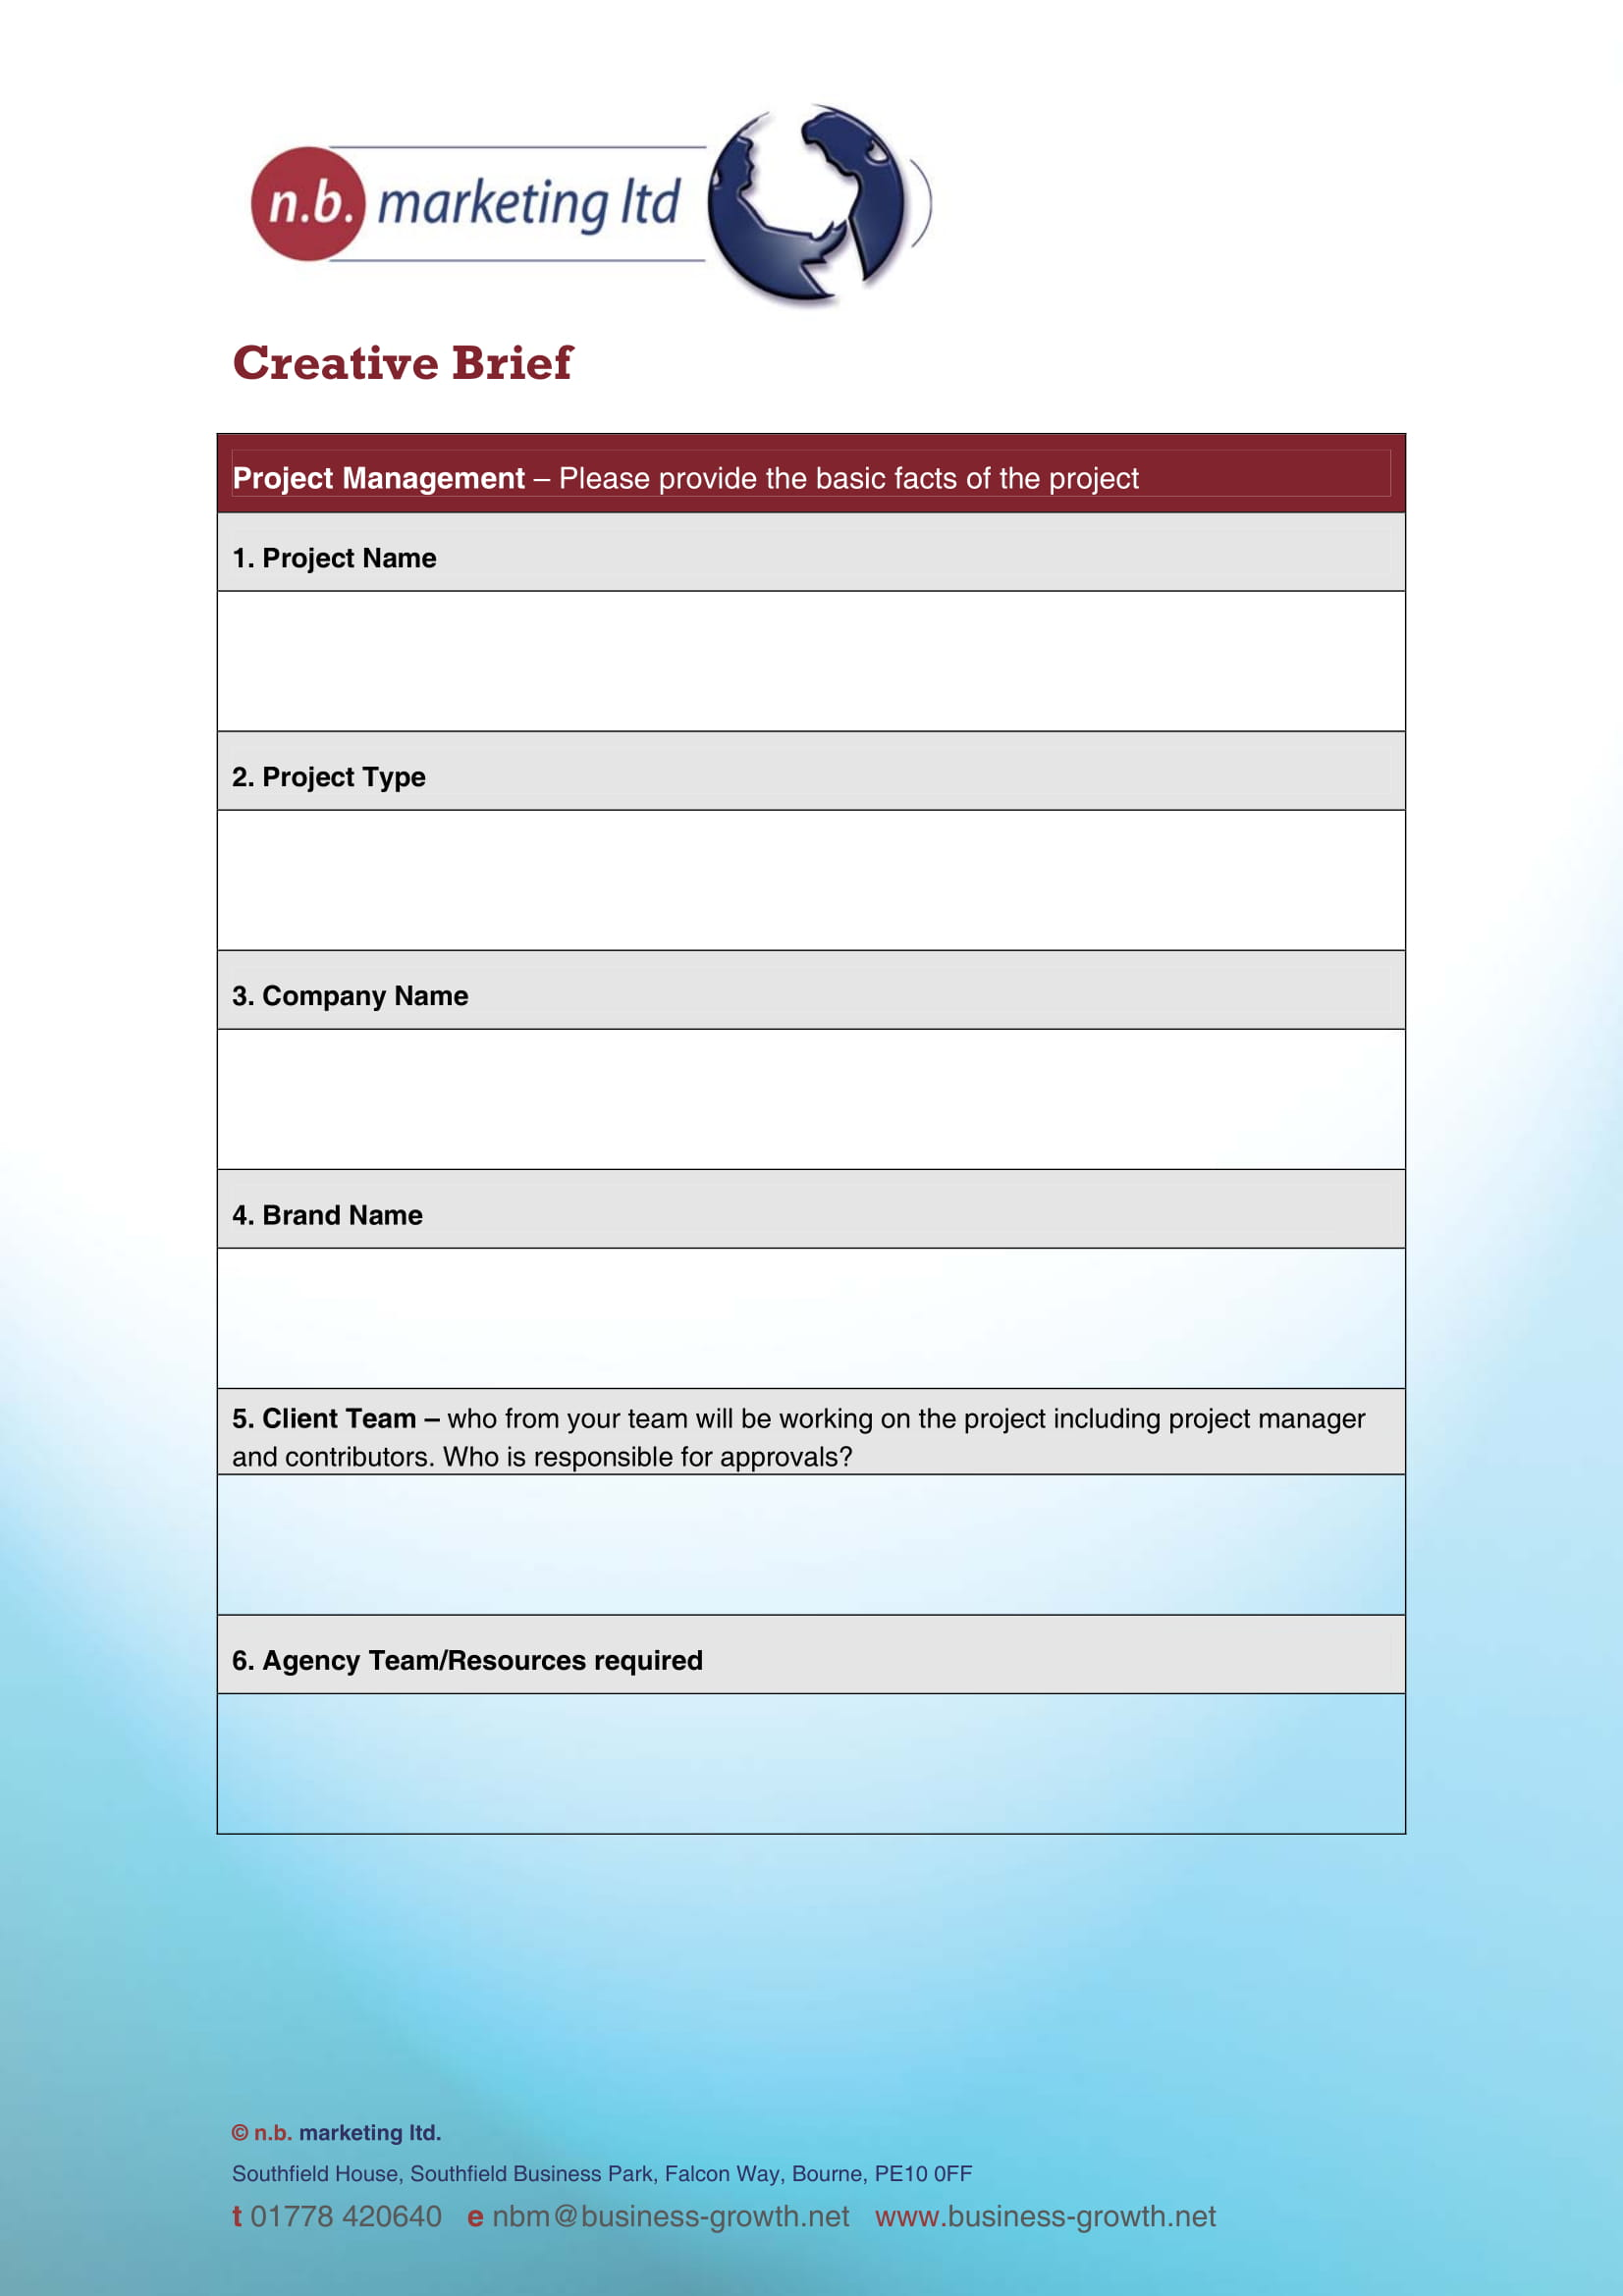 fillable creative brief form example